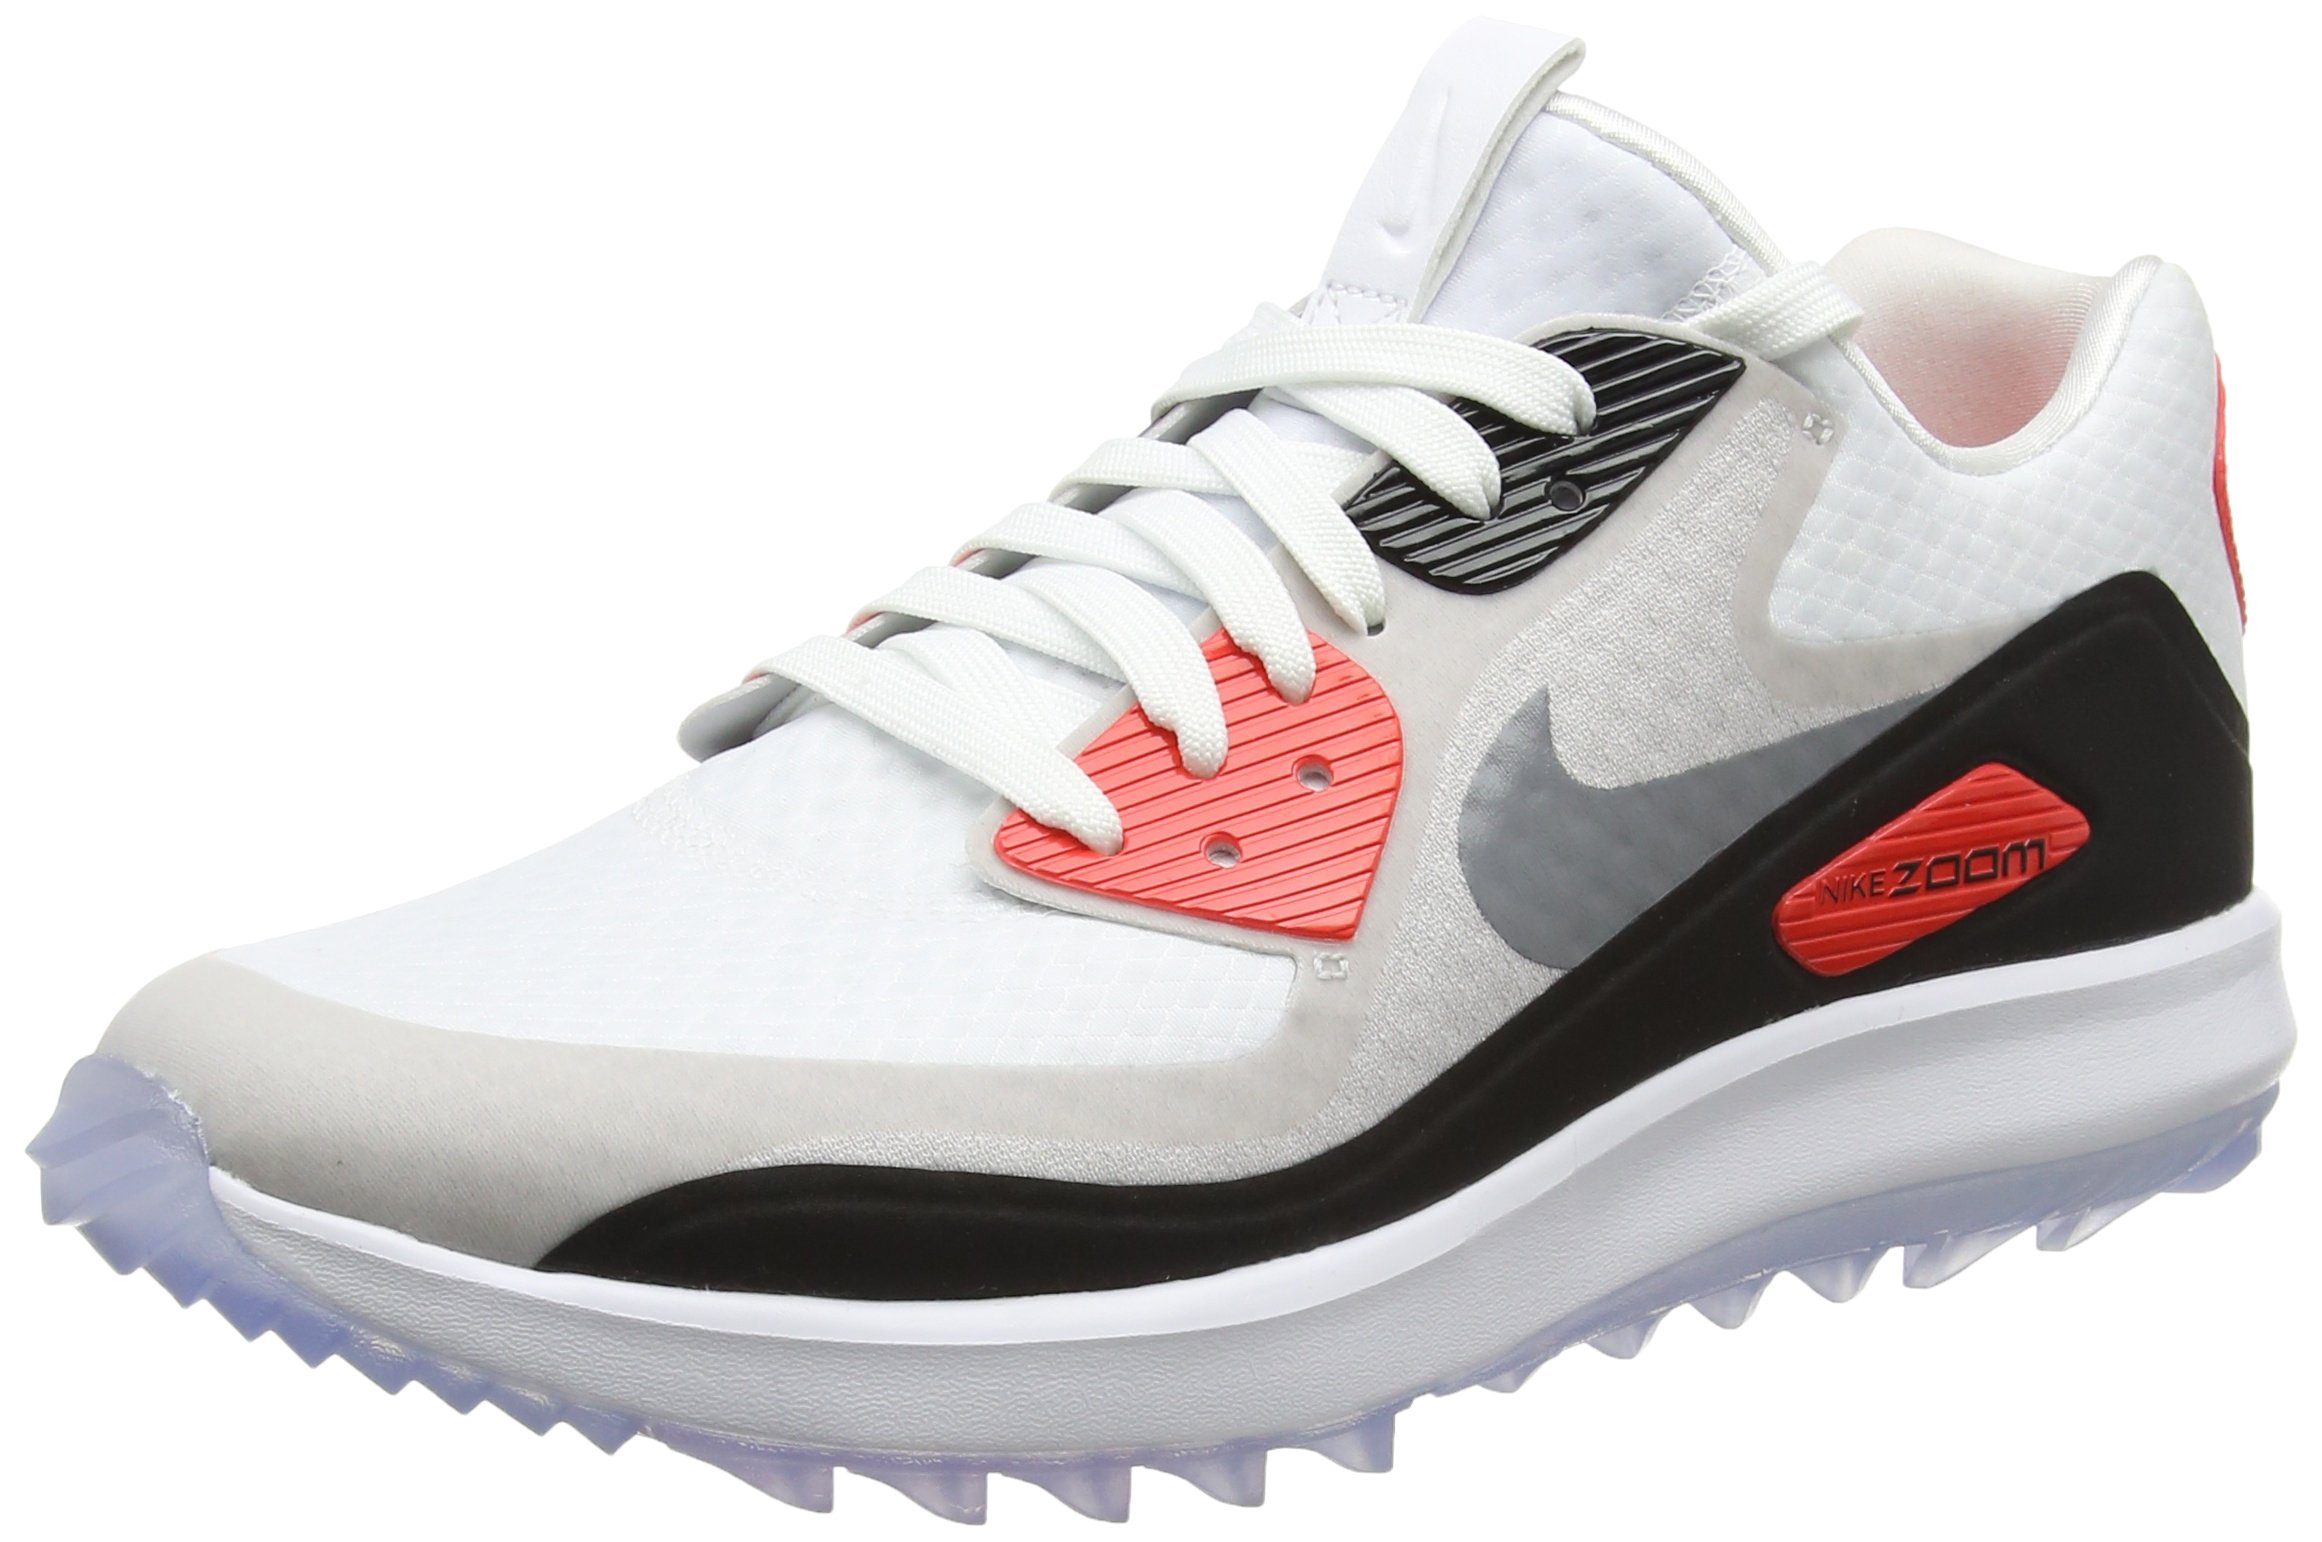 bad5f847064 Galleon - Nike Air Zoom 90 Spikeless Golf Shoes 2017 Women White Cool Gray Neutral  Gray Black Medium 7.5